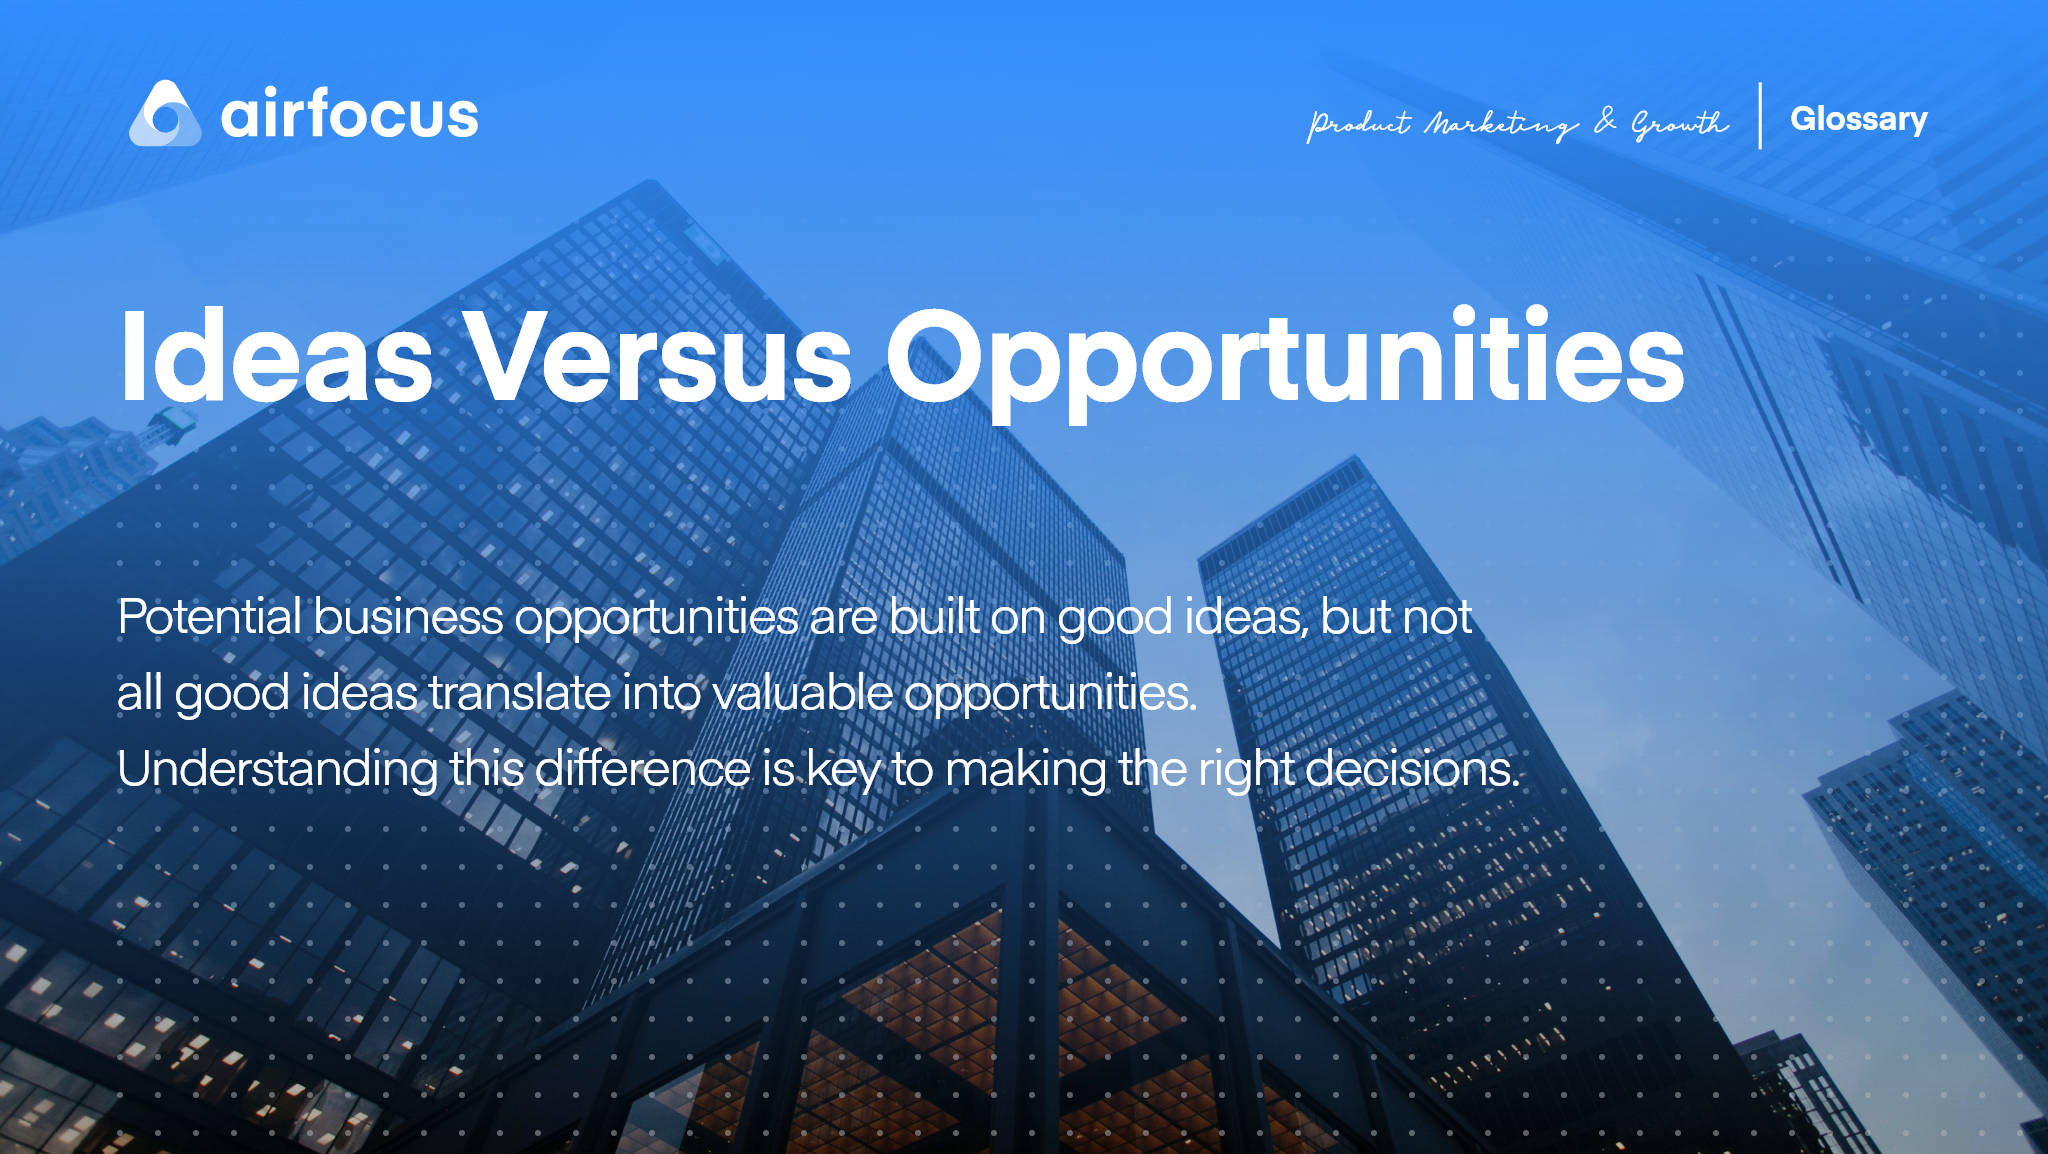 What Does Ideas Versus Opportunities Mean